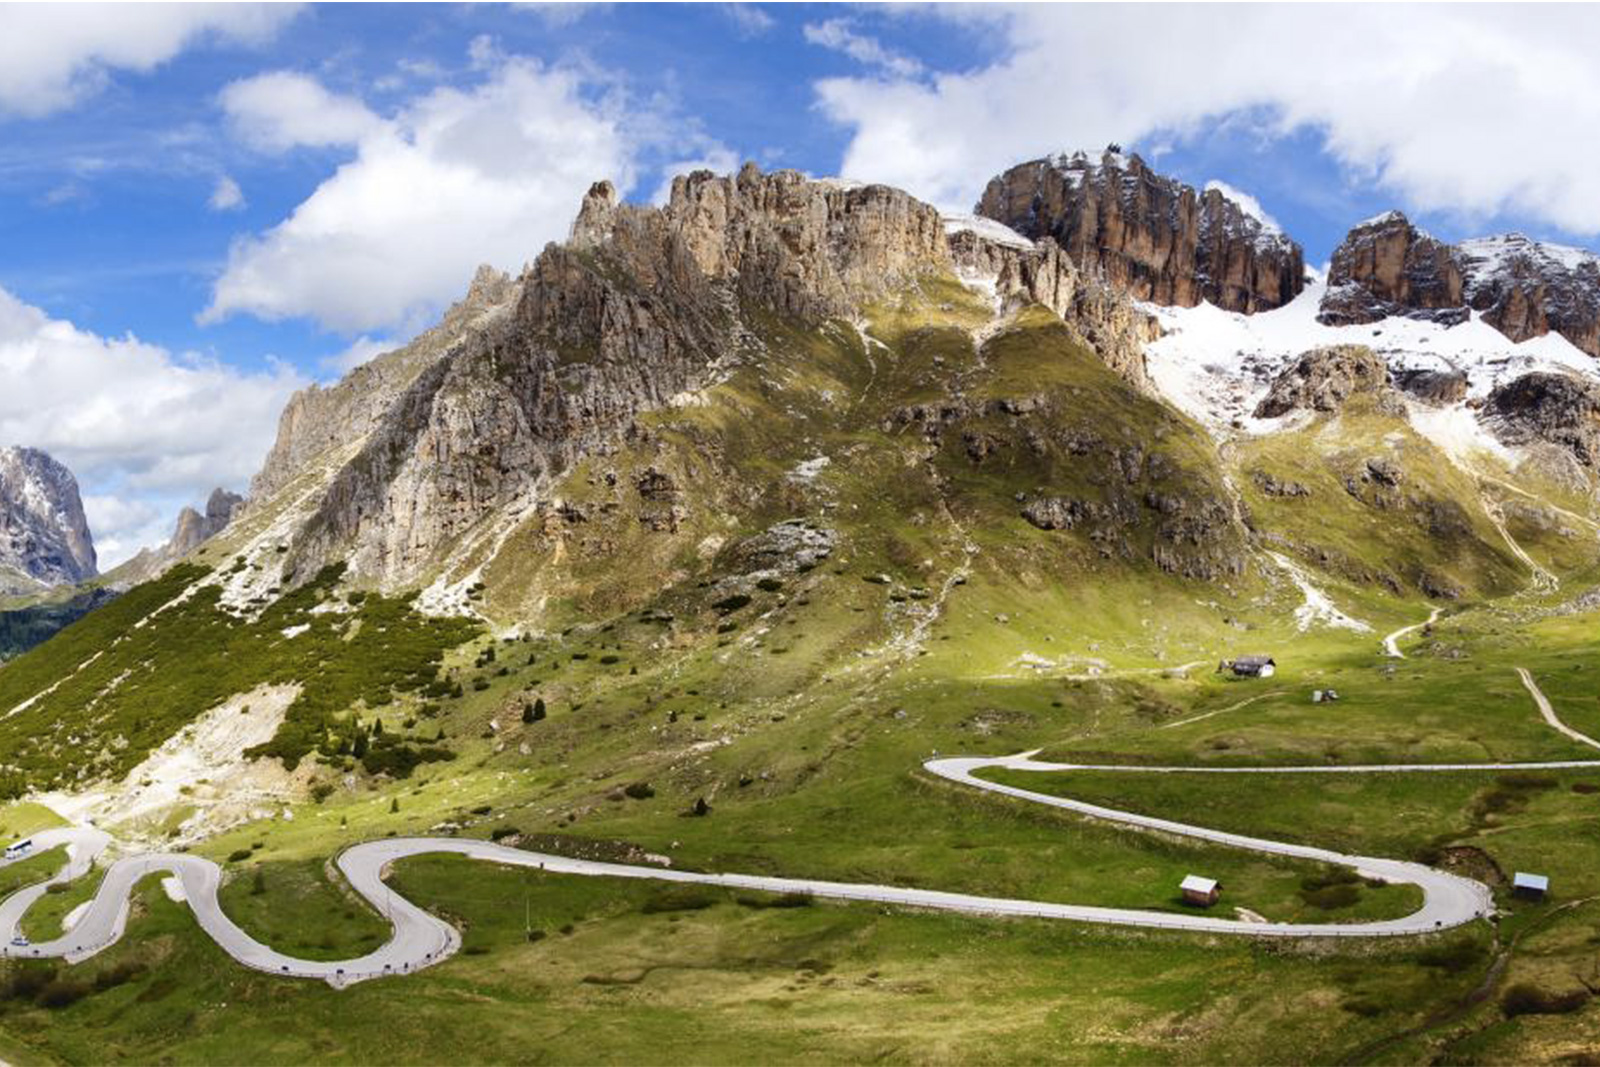 Dolomites, relax surrounded by the nature 15-day self-drive